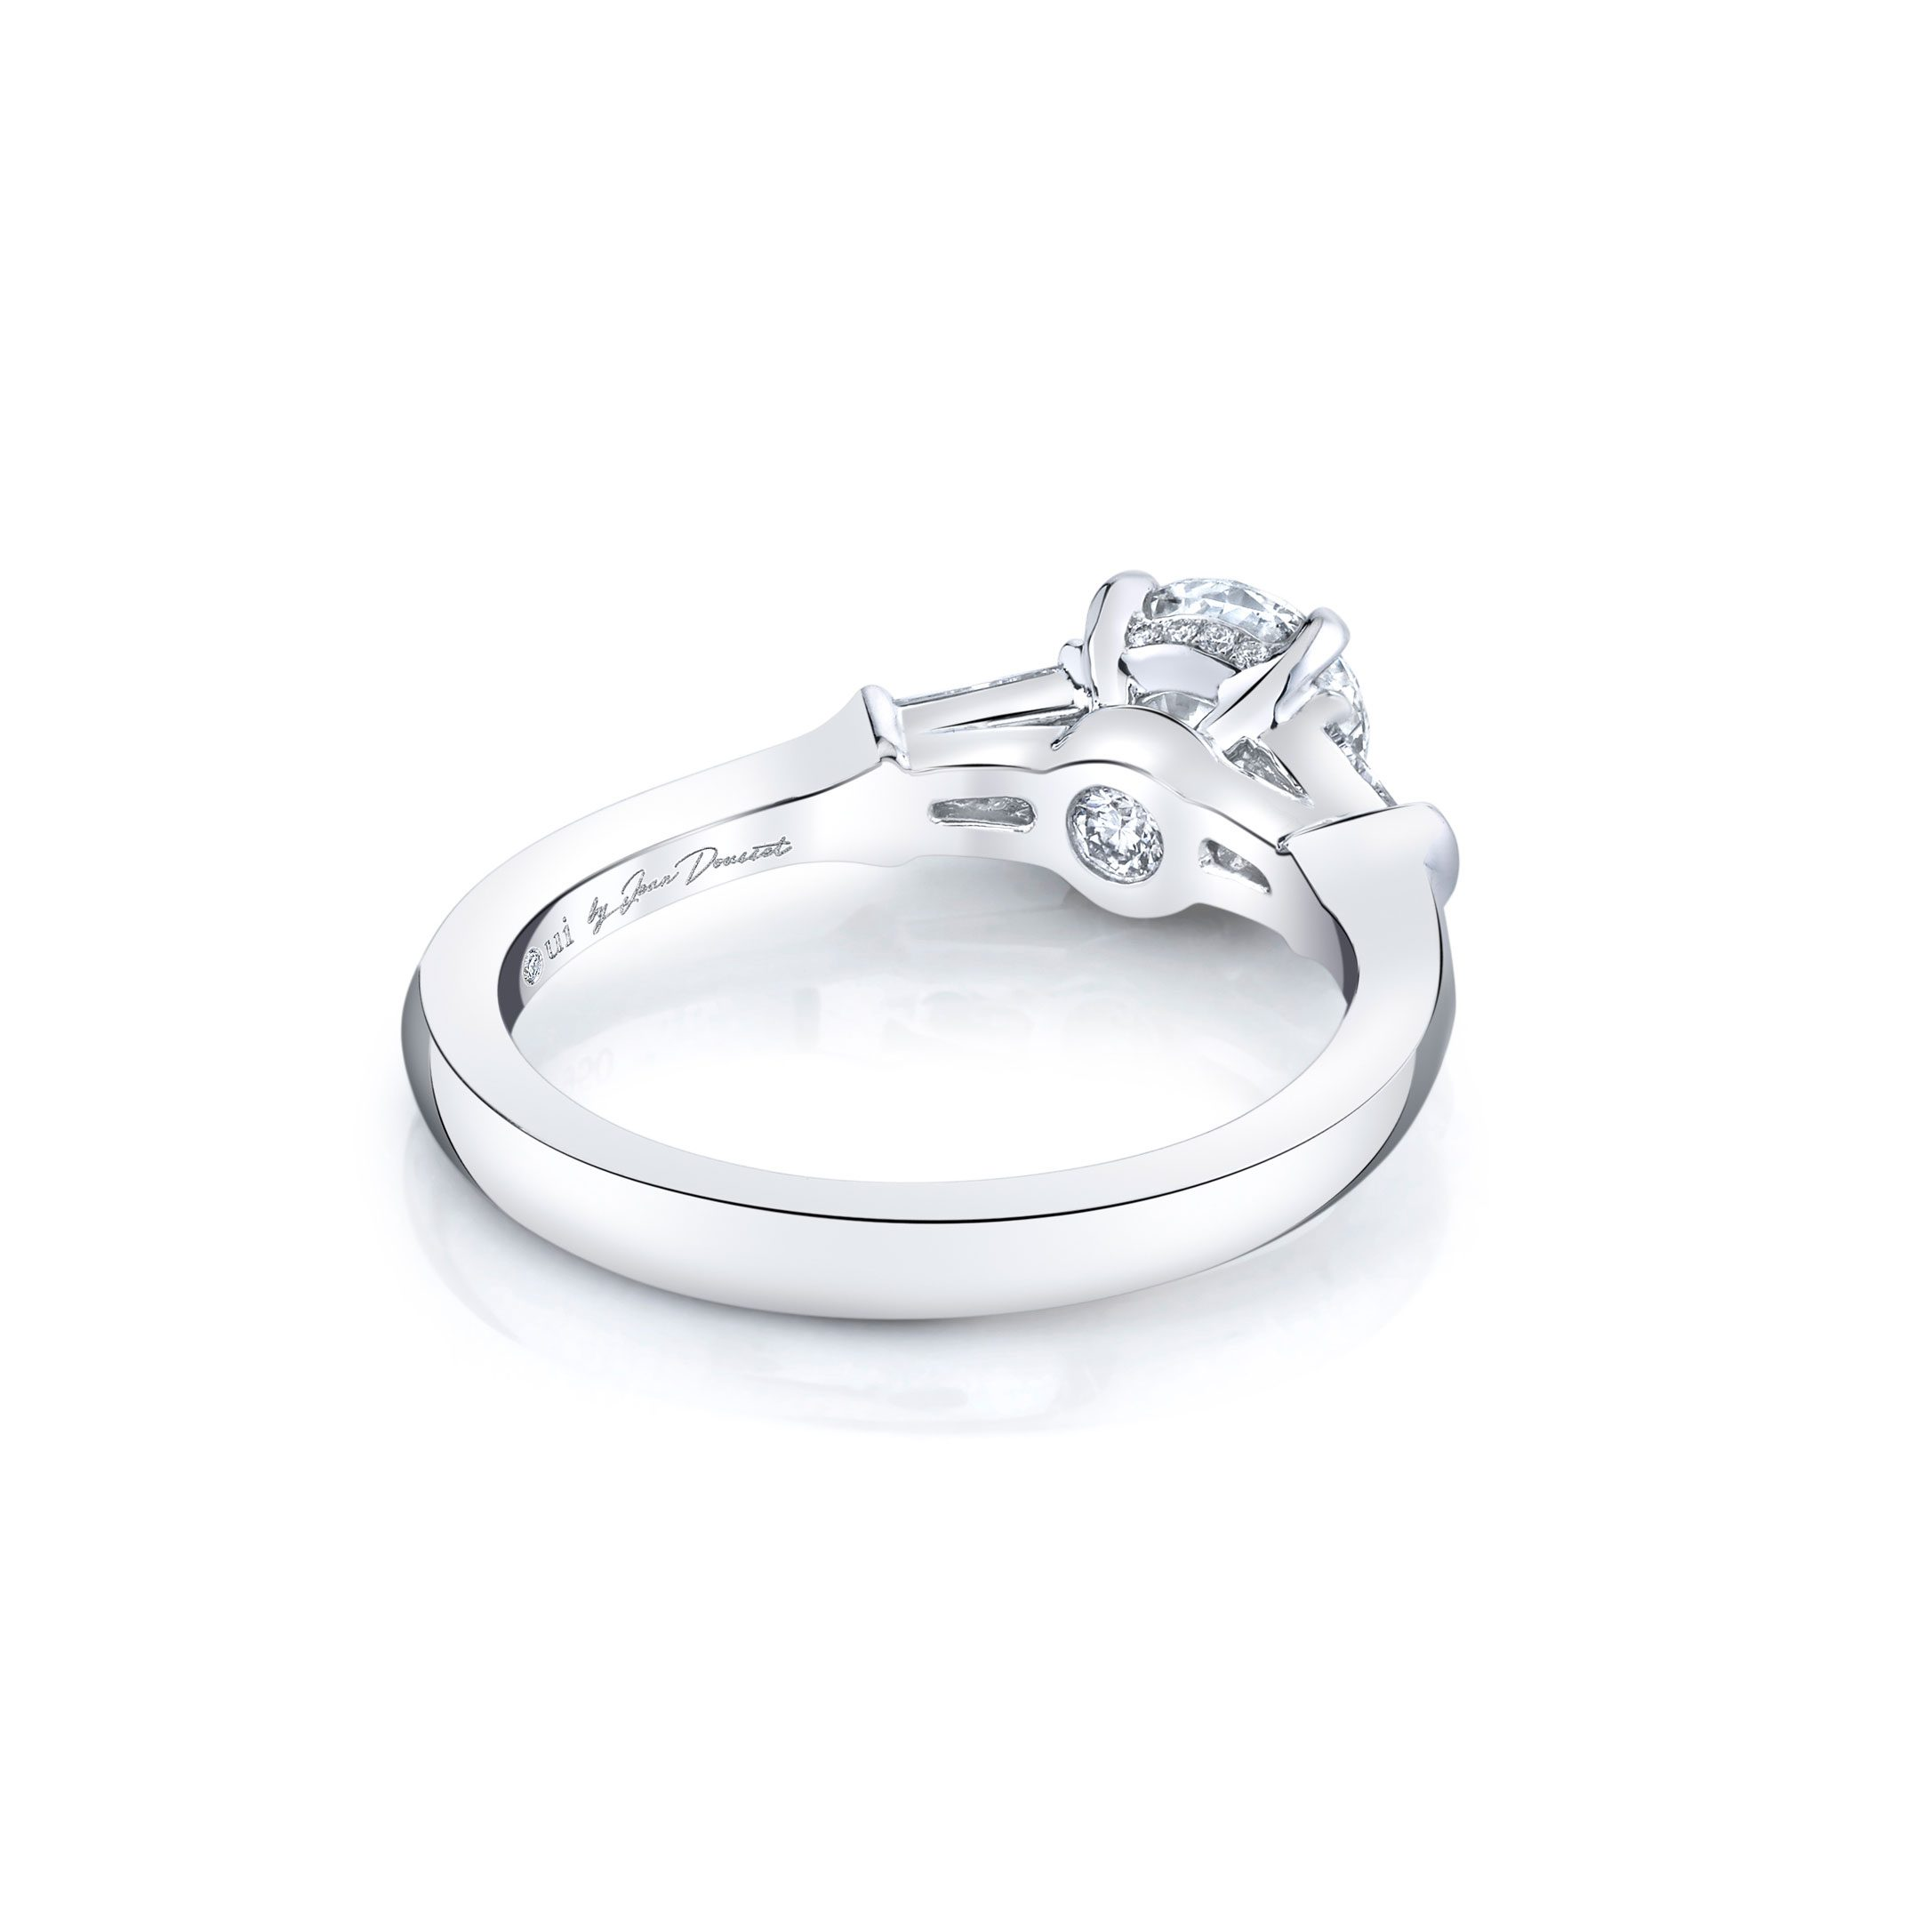 Claire Round Brilliant Three Stone Engagement Ring with tapered baguette diamond side stones in 18k White Gold Back View by Oui by Jean Dousset